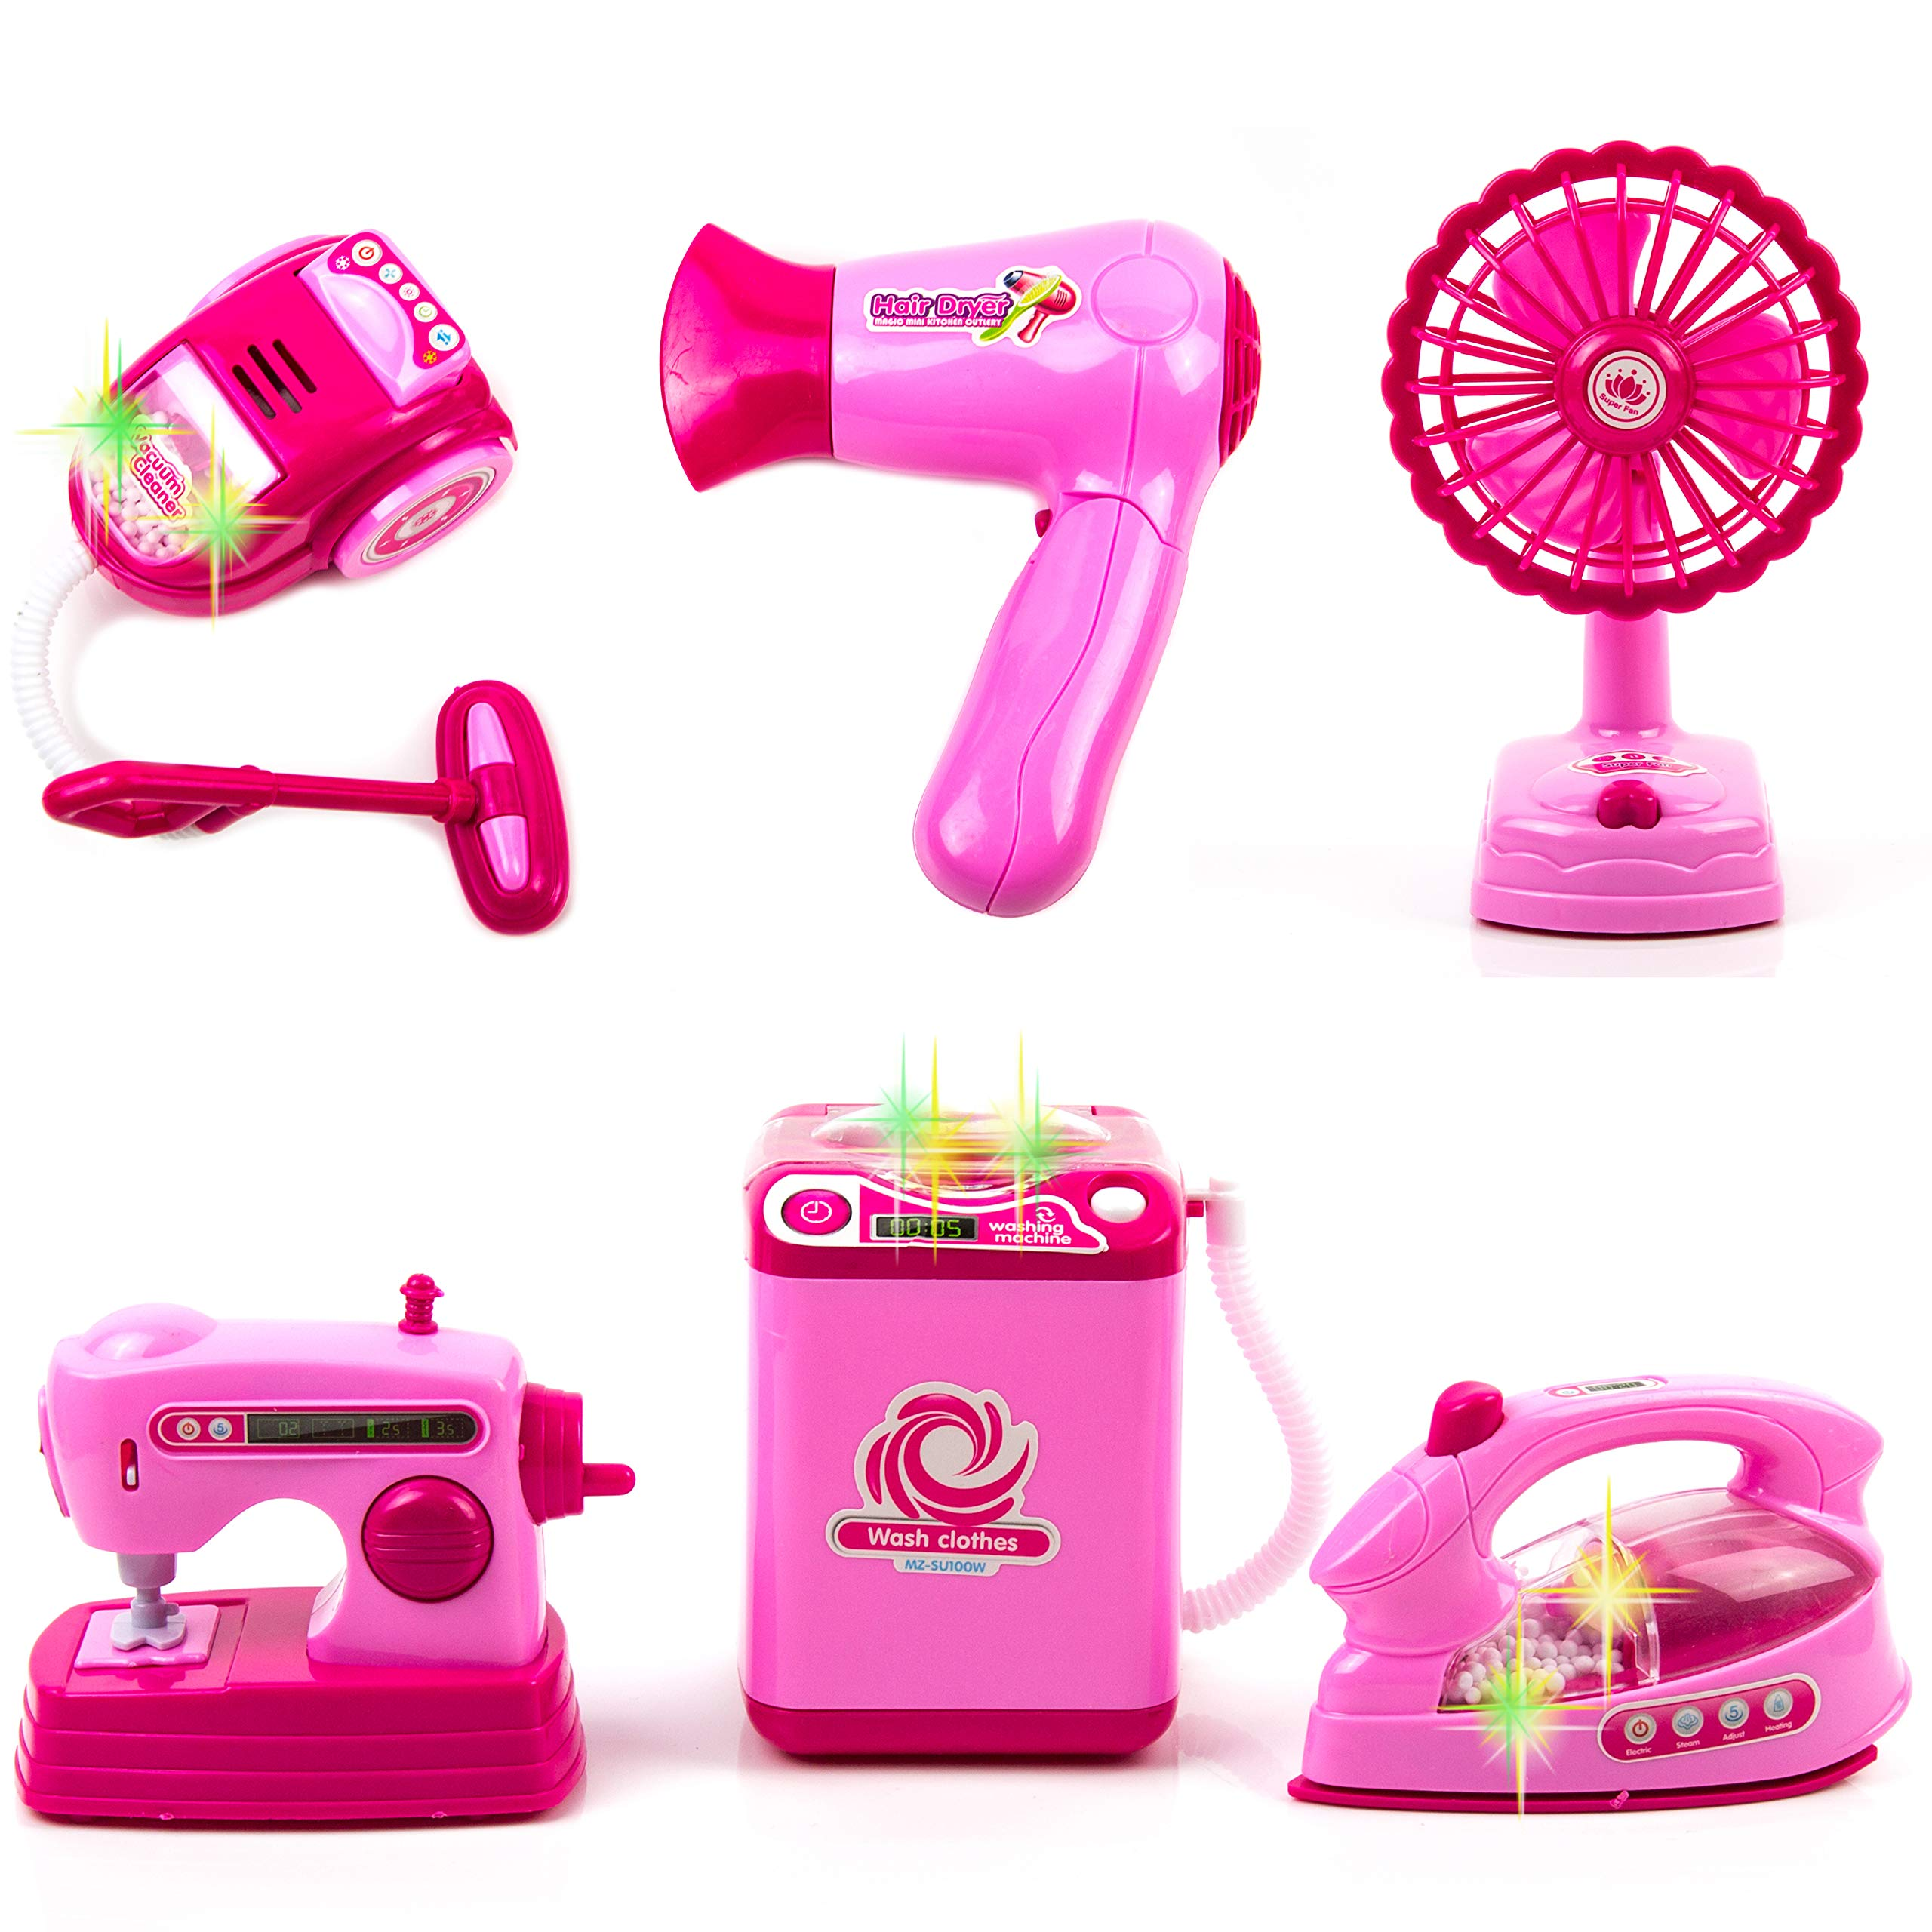 Toysery Mini Household Appliances Toy Set Material | Equipped with Lights | Easy to Play | Promote Creativity and Learning Skills of Kids | Battery Operated | Dream Gift for Girls